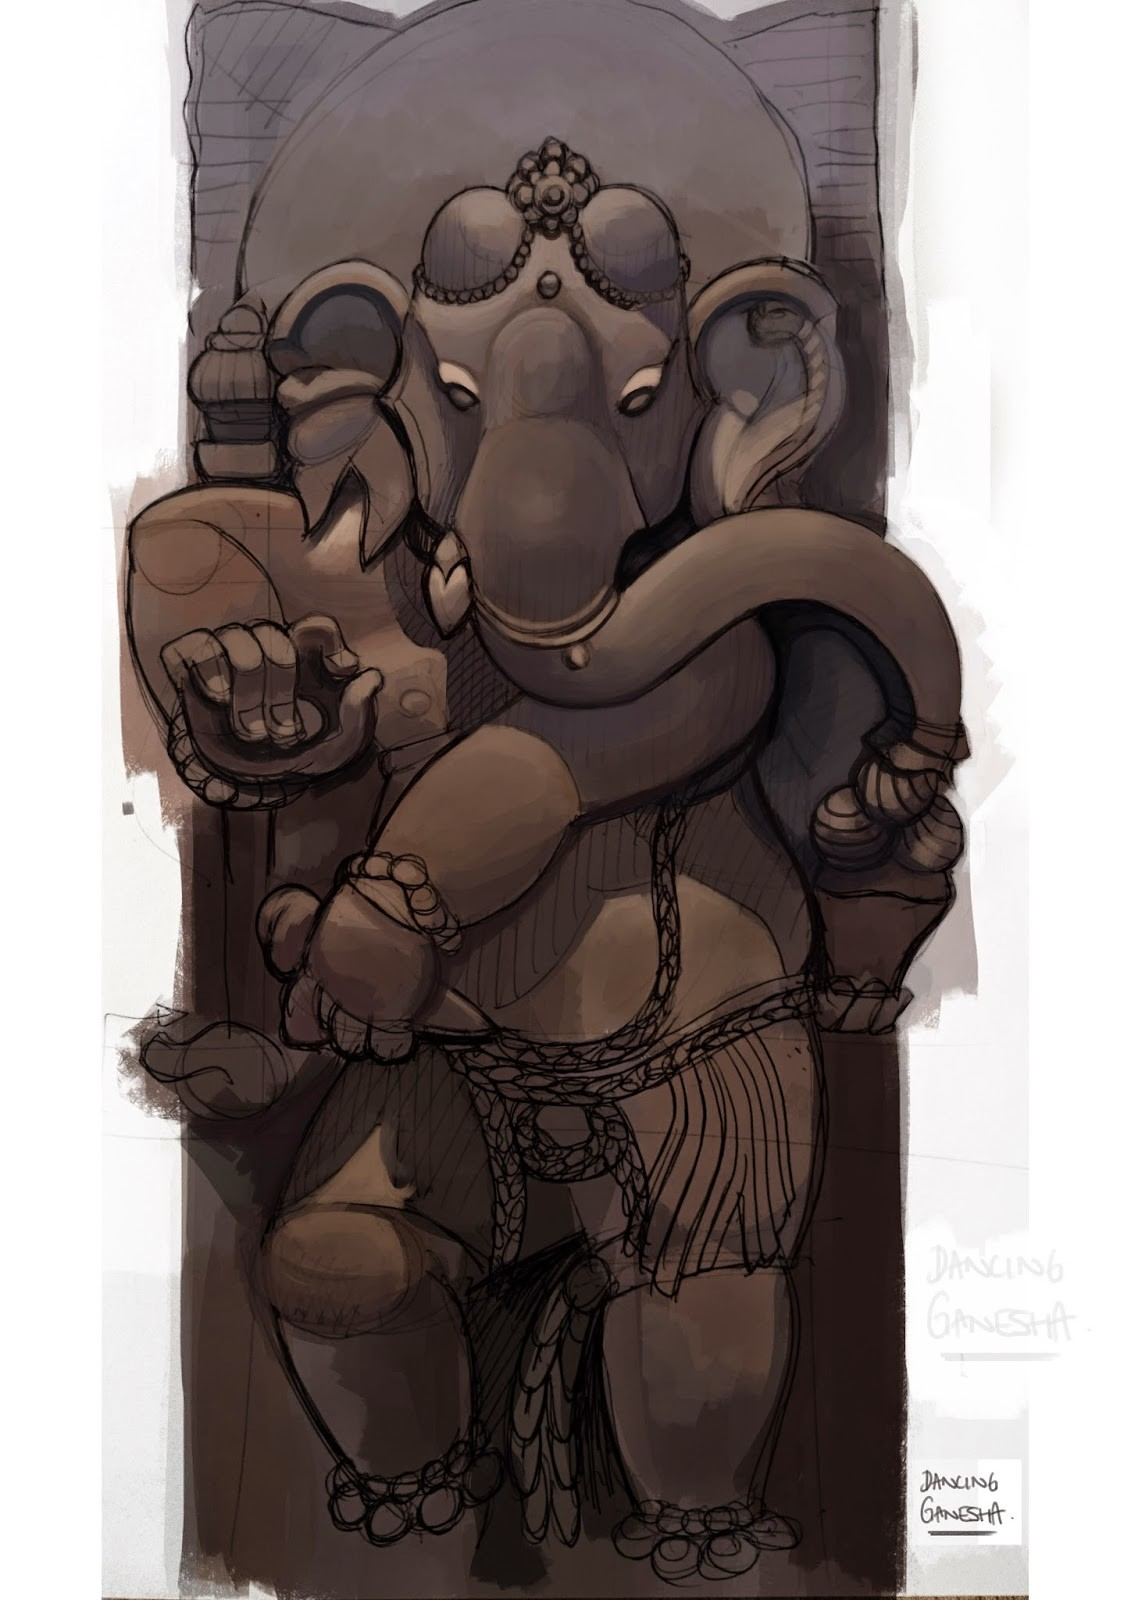 Bradley morgan johnson dancing ganesha paintover